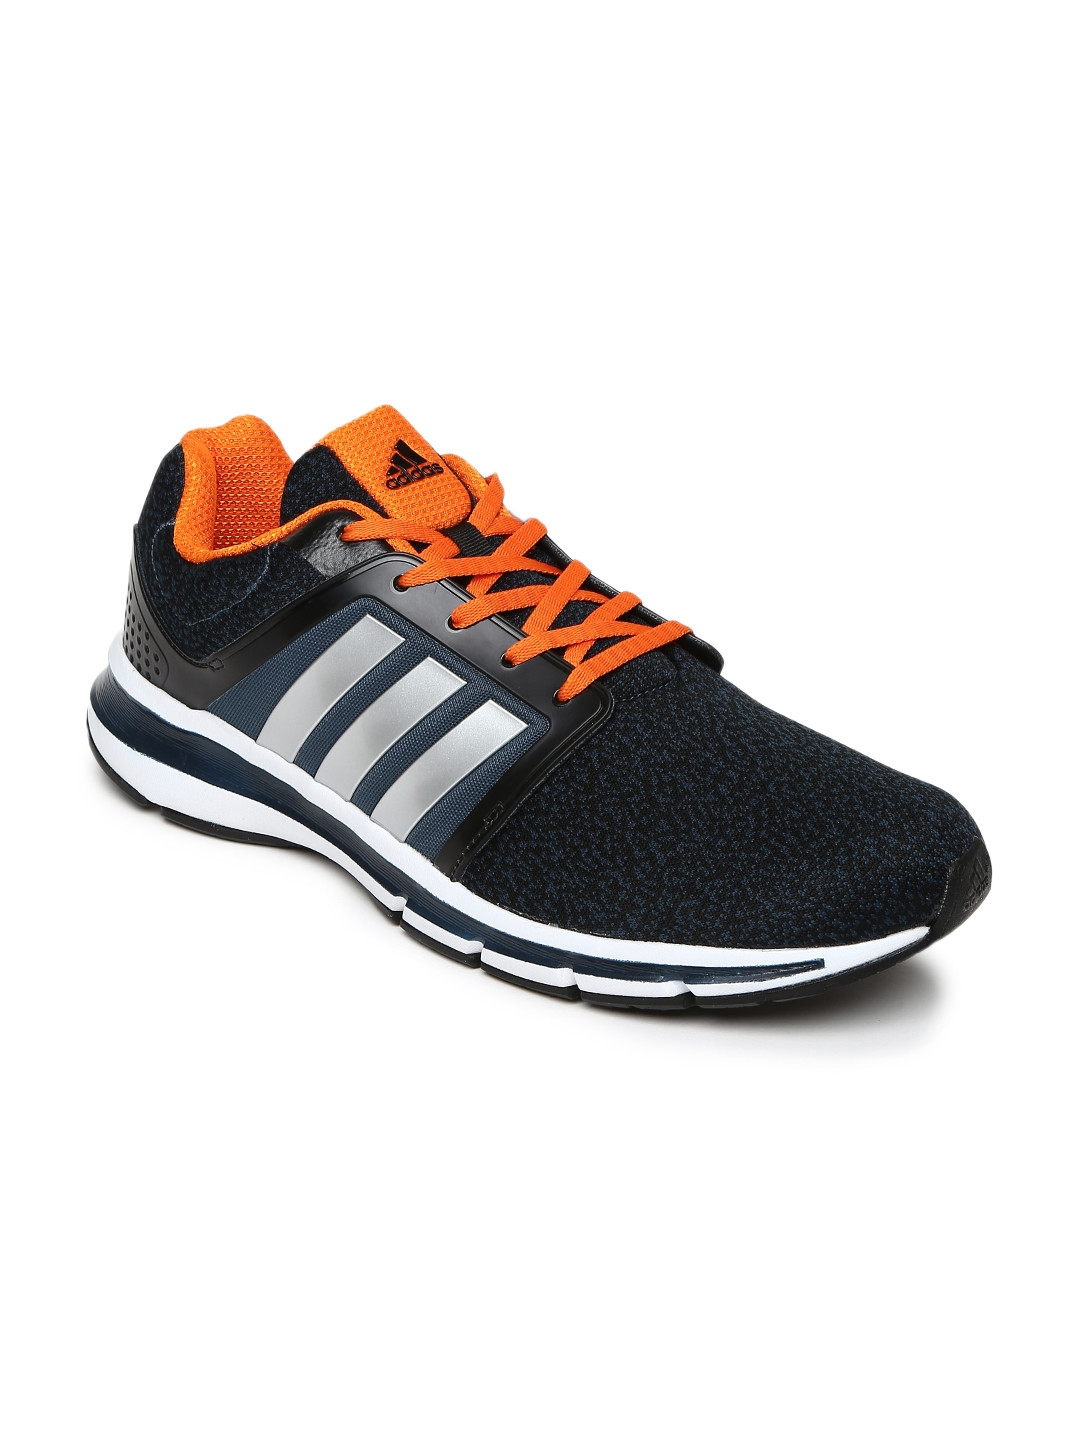 3835855696d9a Buy ADIDAS Men Navy Yaris Running Shoes - Sports Shoes for Men ...